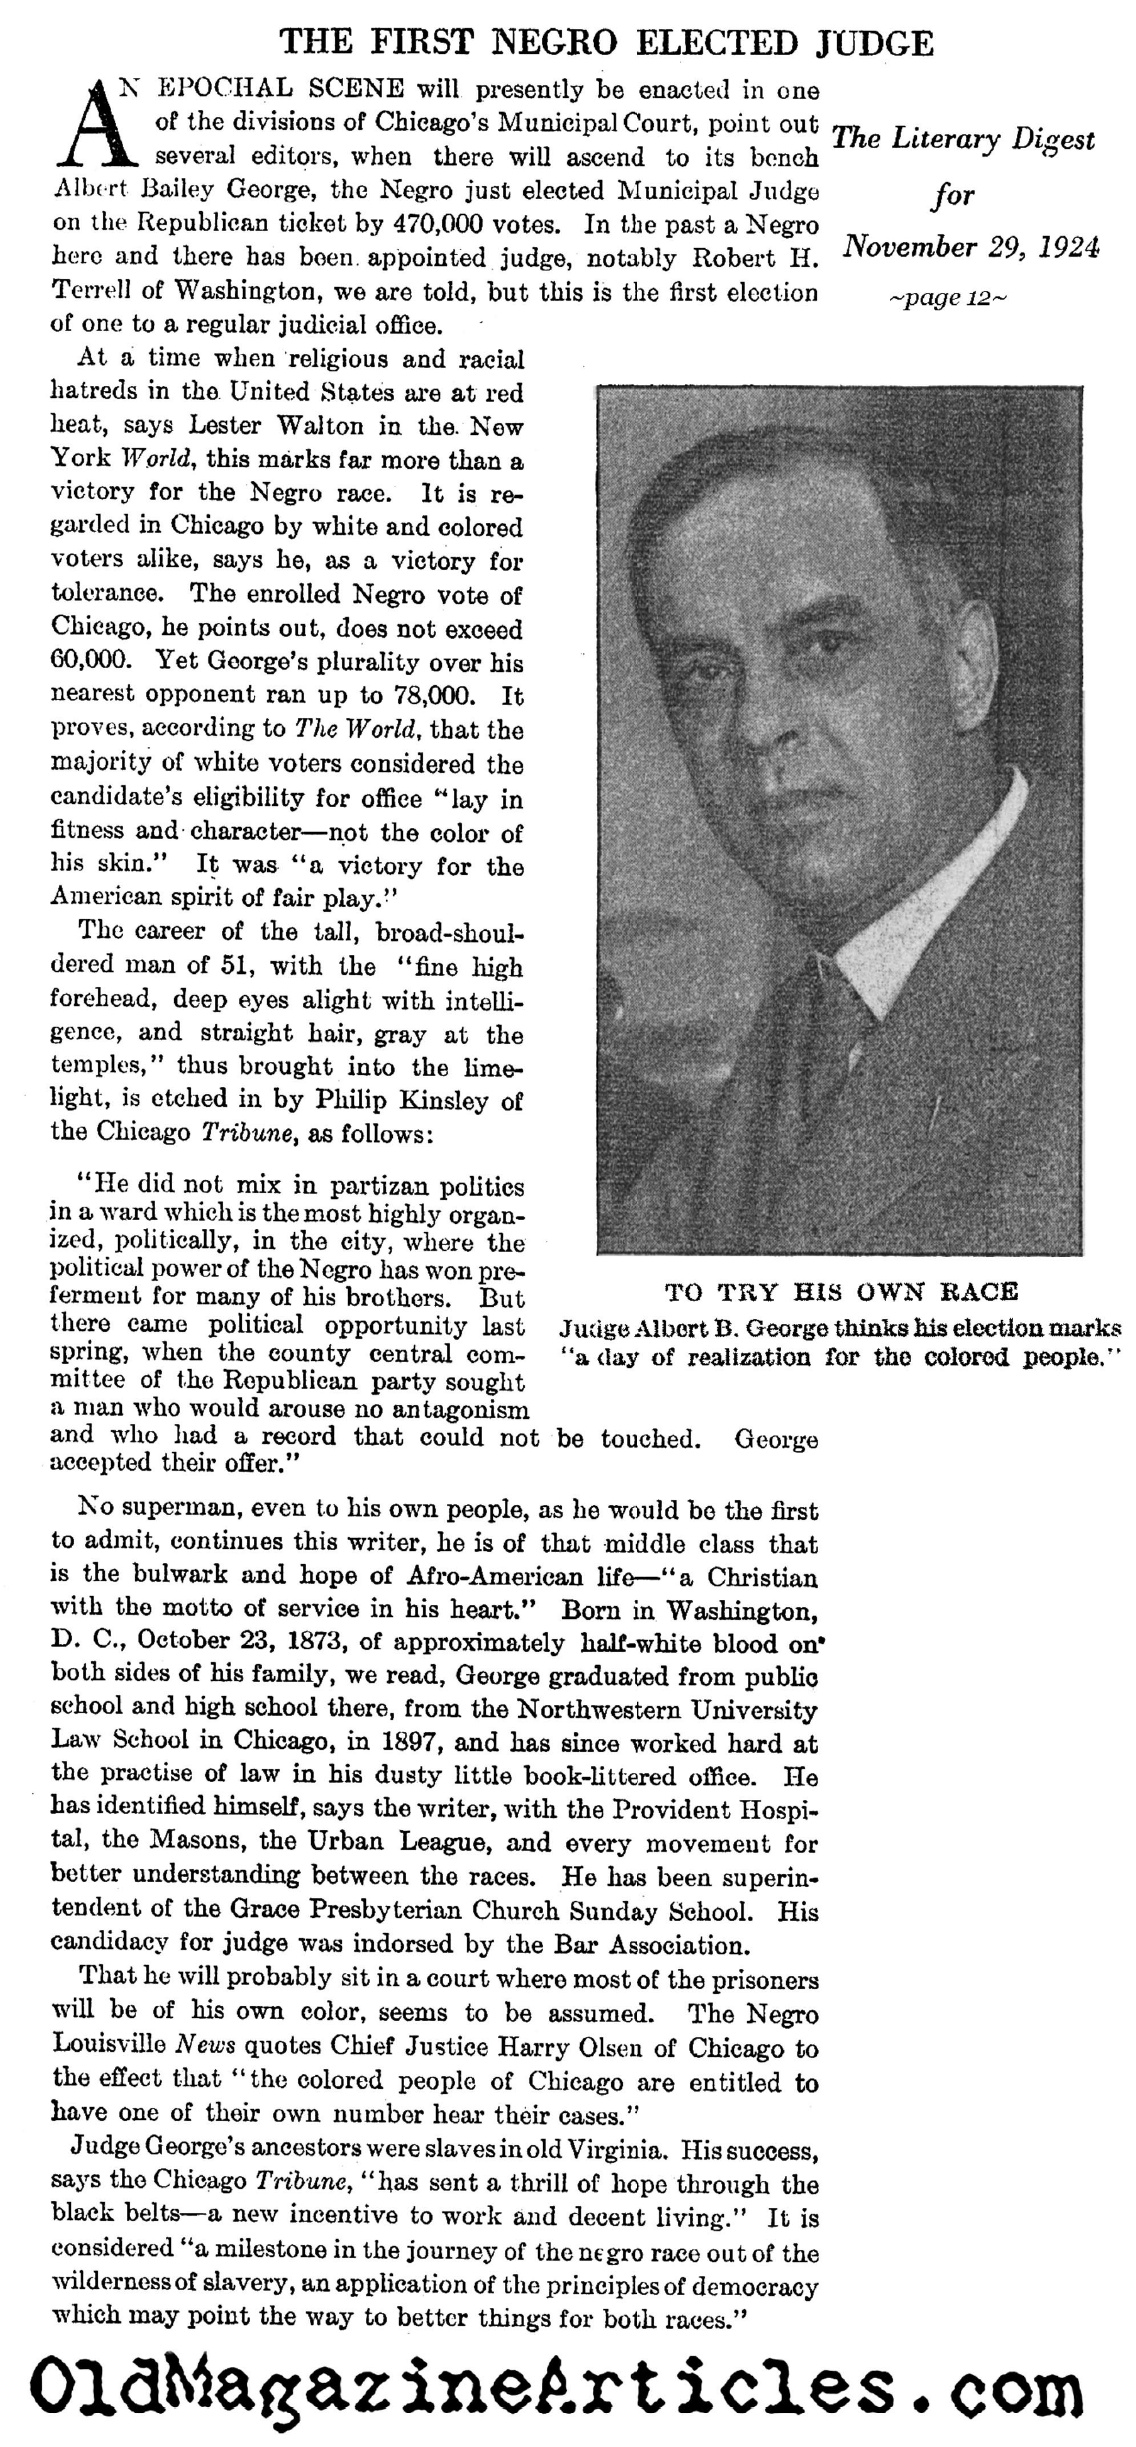 The First Elected African-American Judge (Literary Digest, 1924)